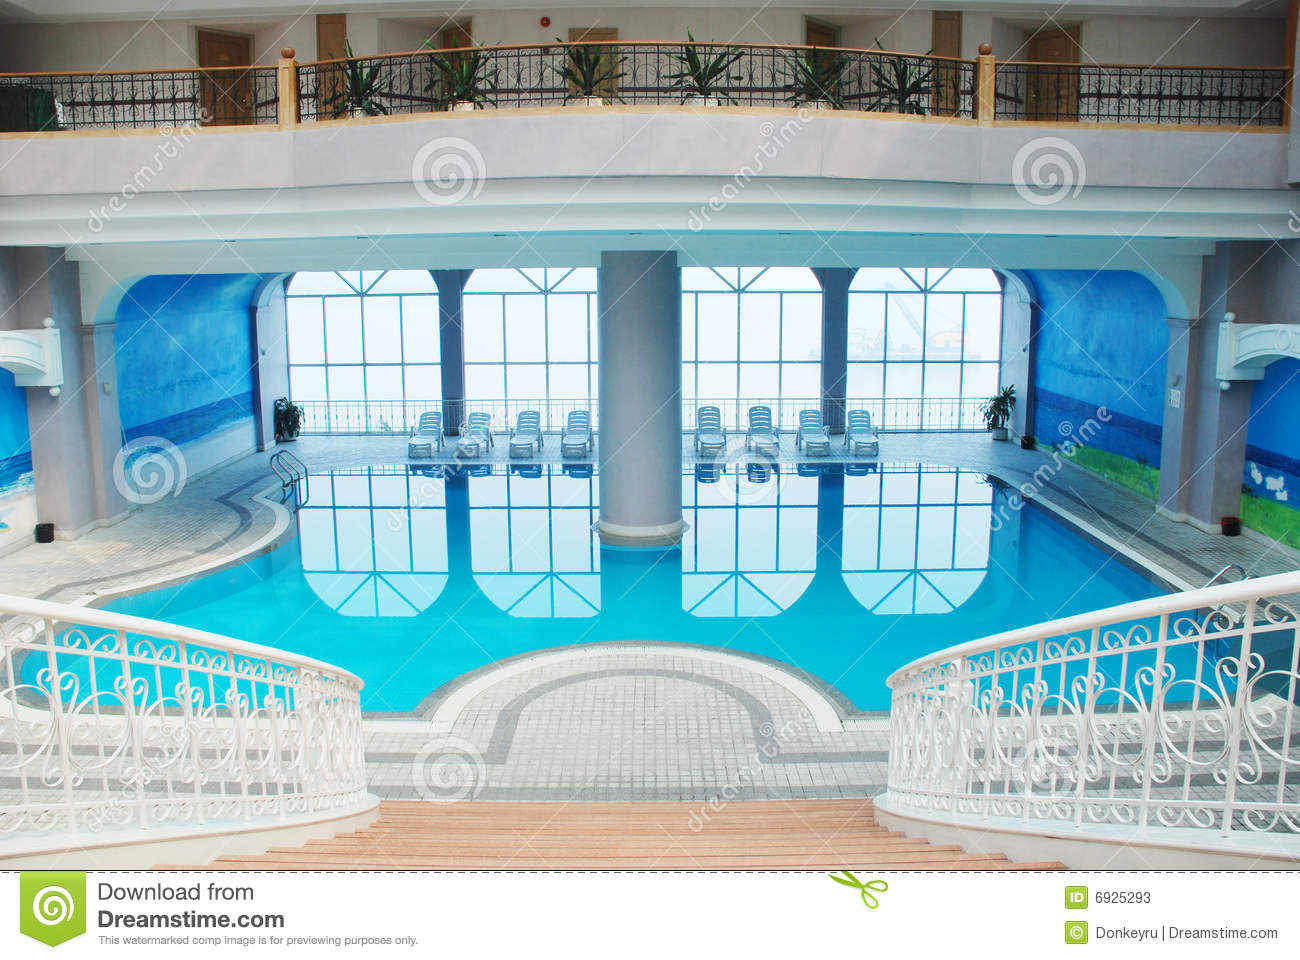 La piscine d 39 int rieur photos stock image 6925293 for Hotel avec piscine interieur